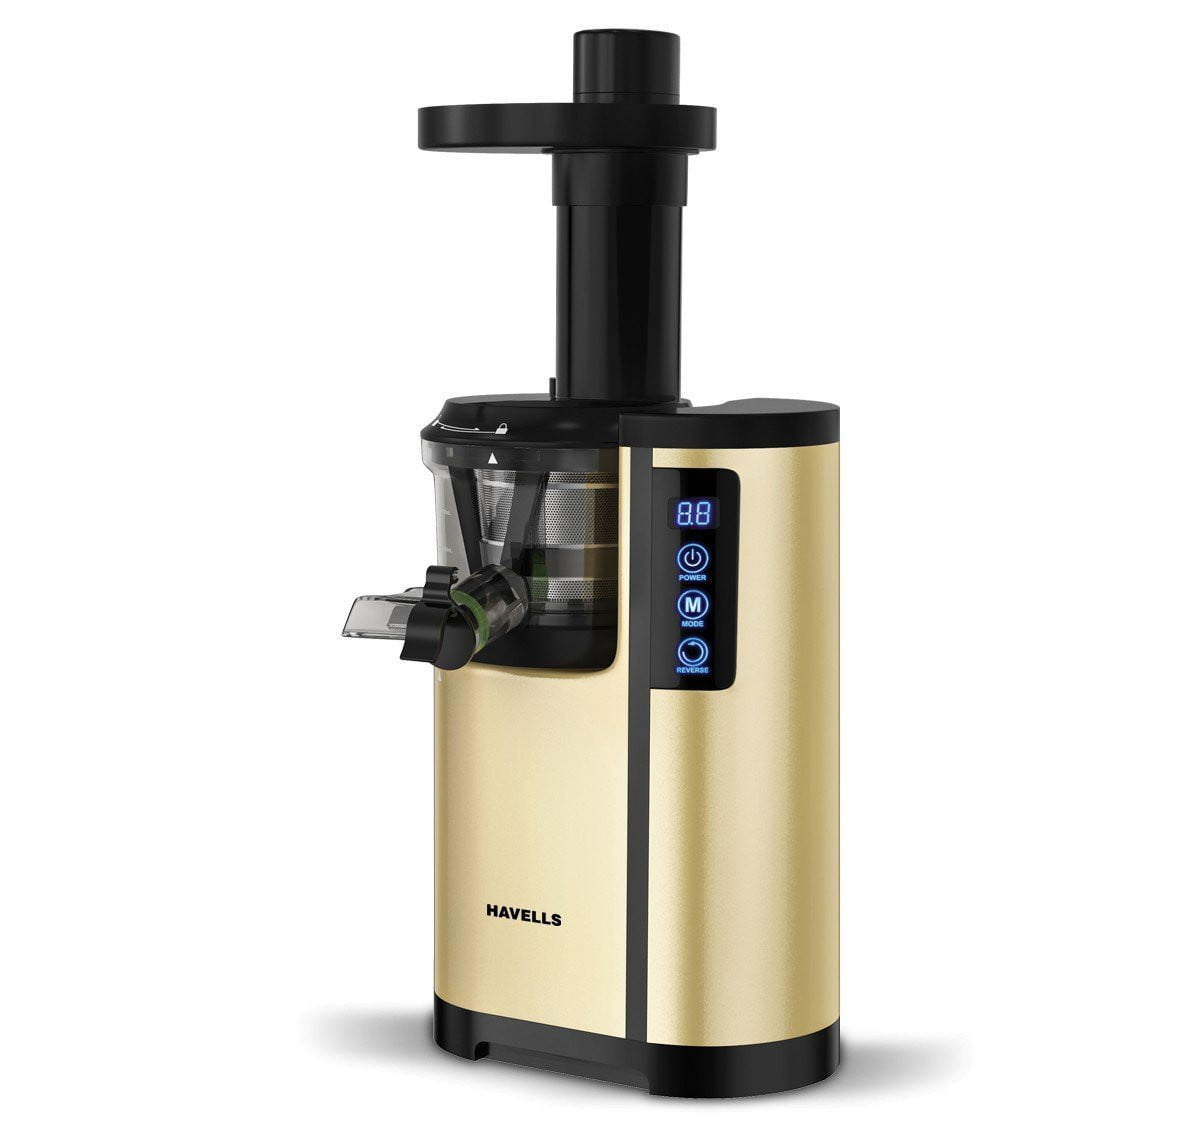 Havells Nutrisense 150W Cold Press Slow Juicer 150W, 47 RPM, Silent operation - Buythevalue.in